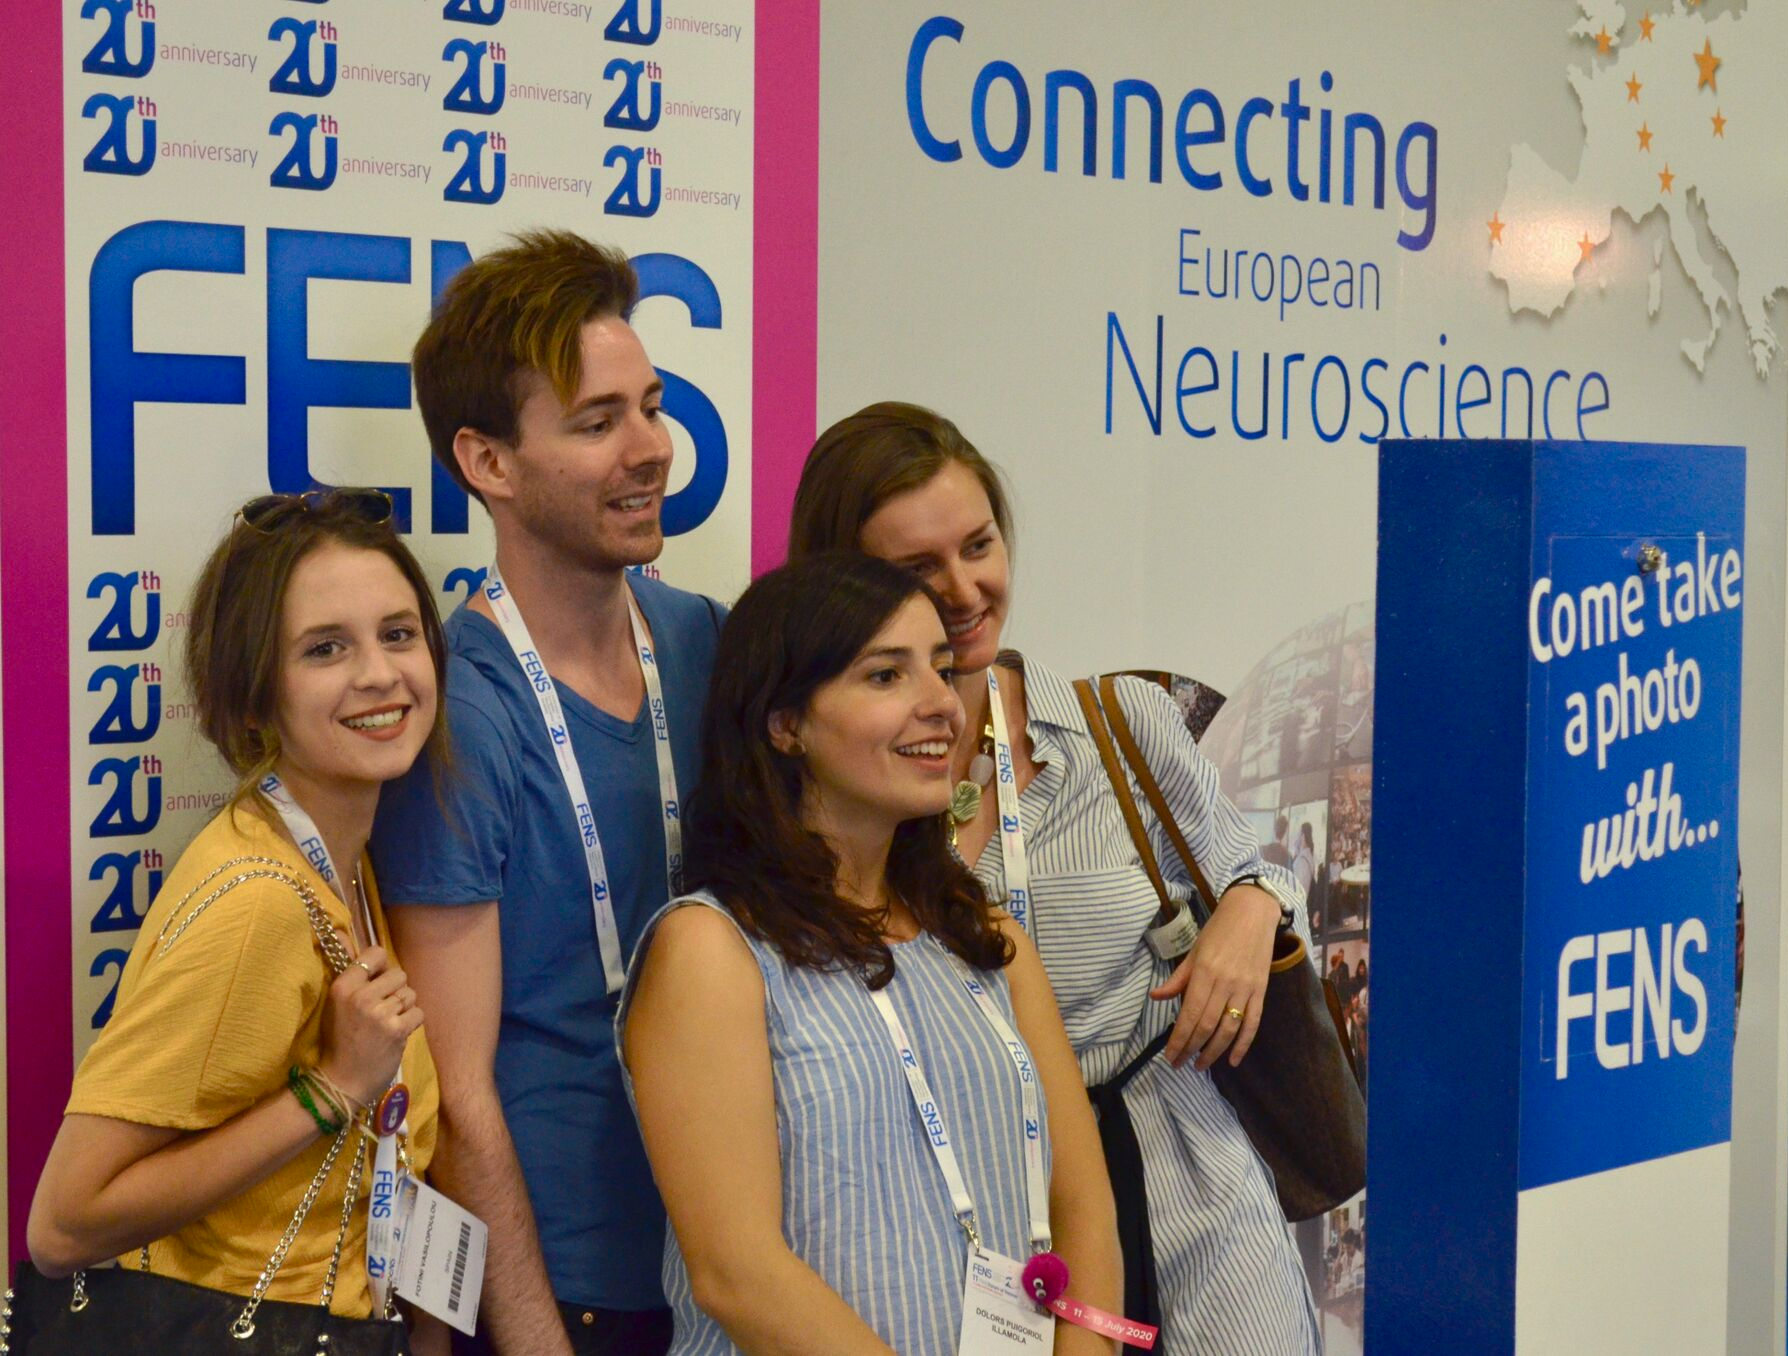 FENS, Neuroscience conference, congress, forum